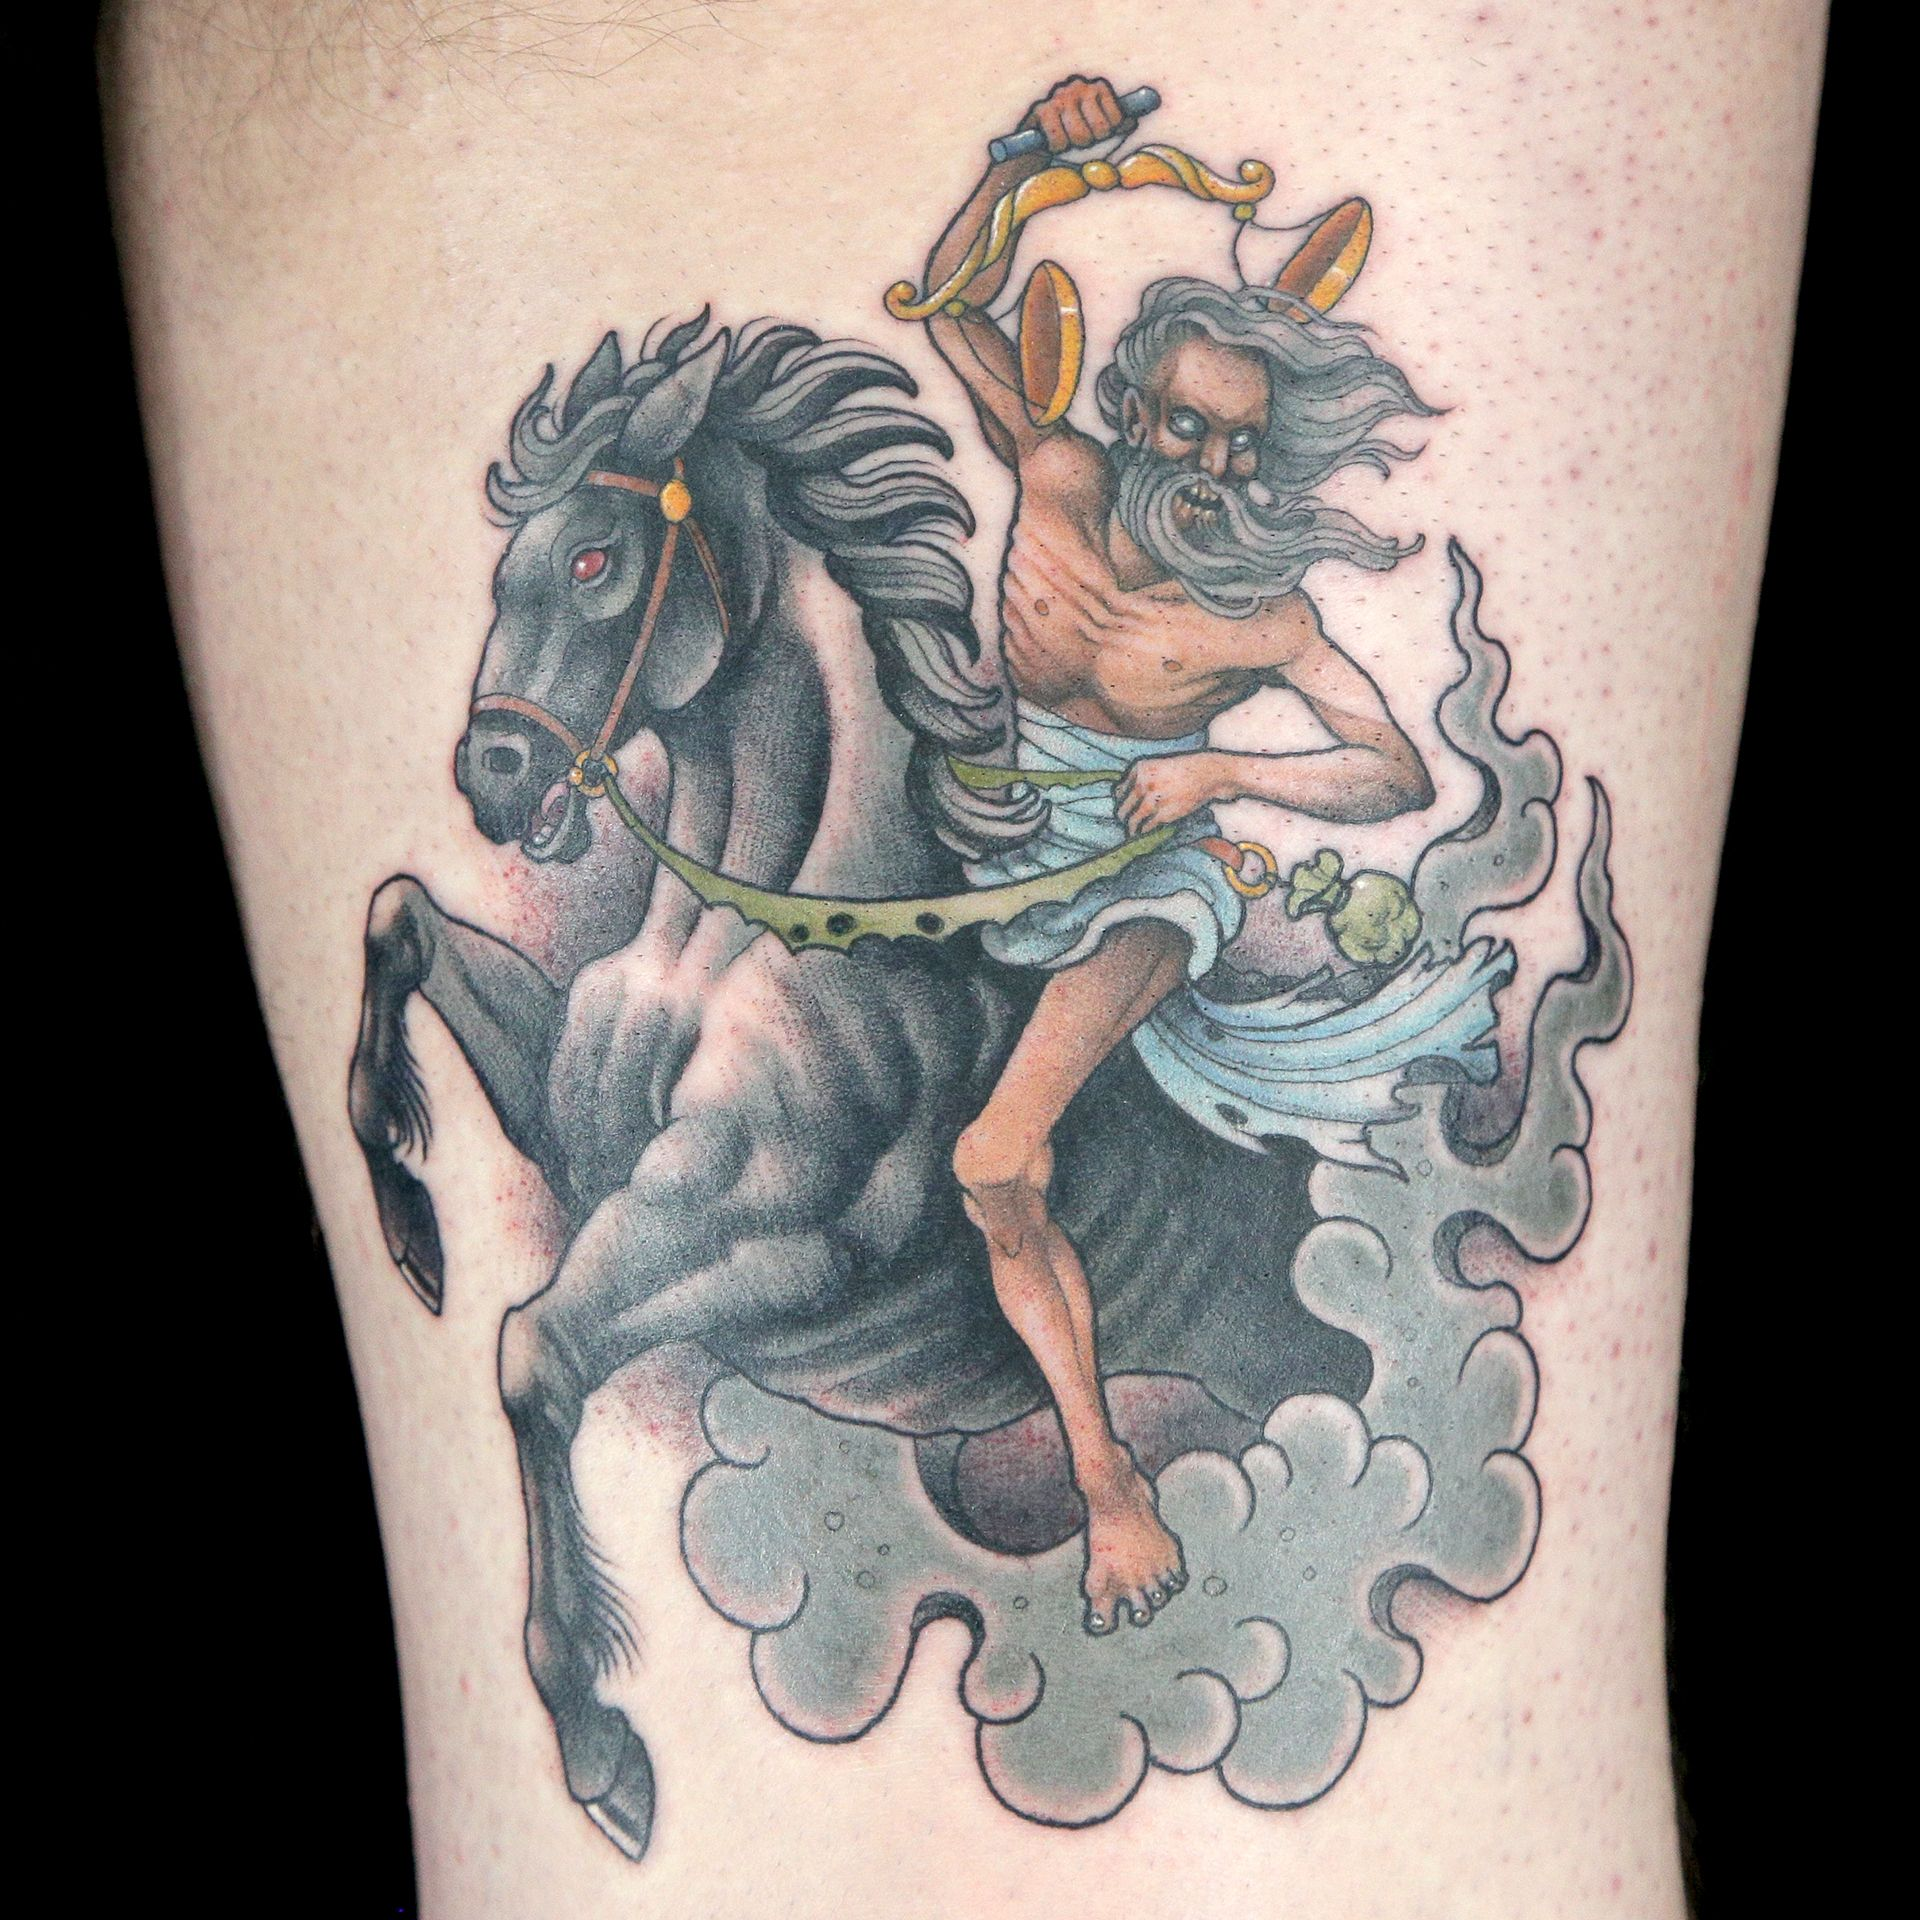 Horseman Of The Apocalypse Tattoo By Erin Chance Horseman Of The